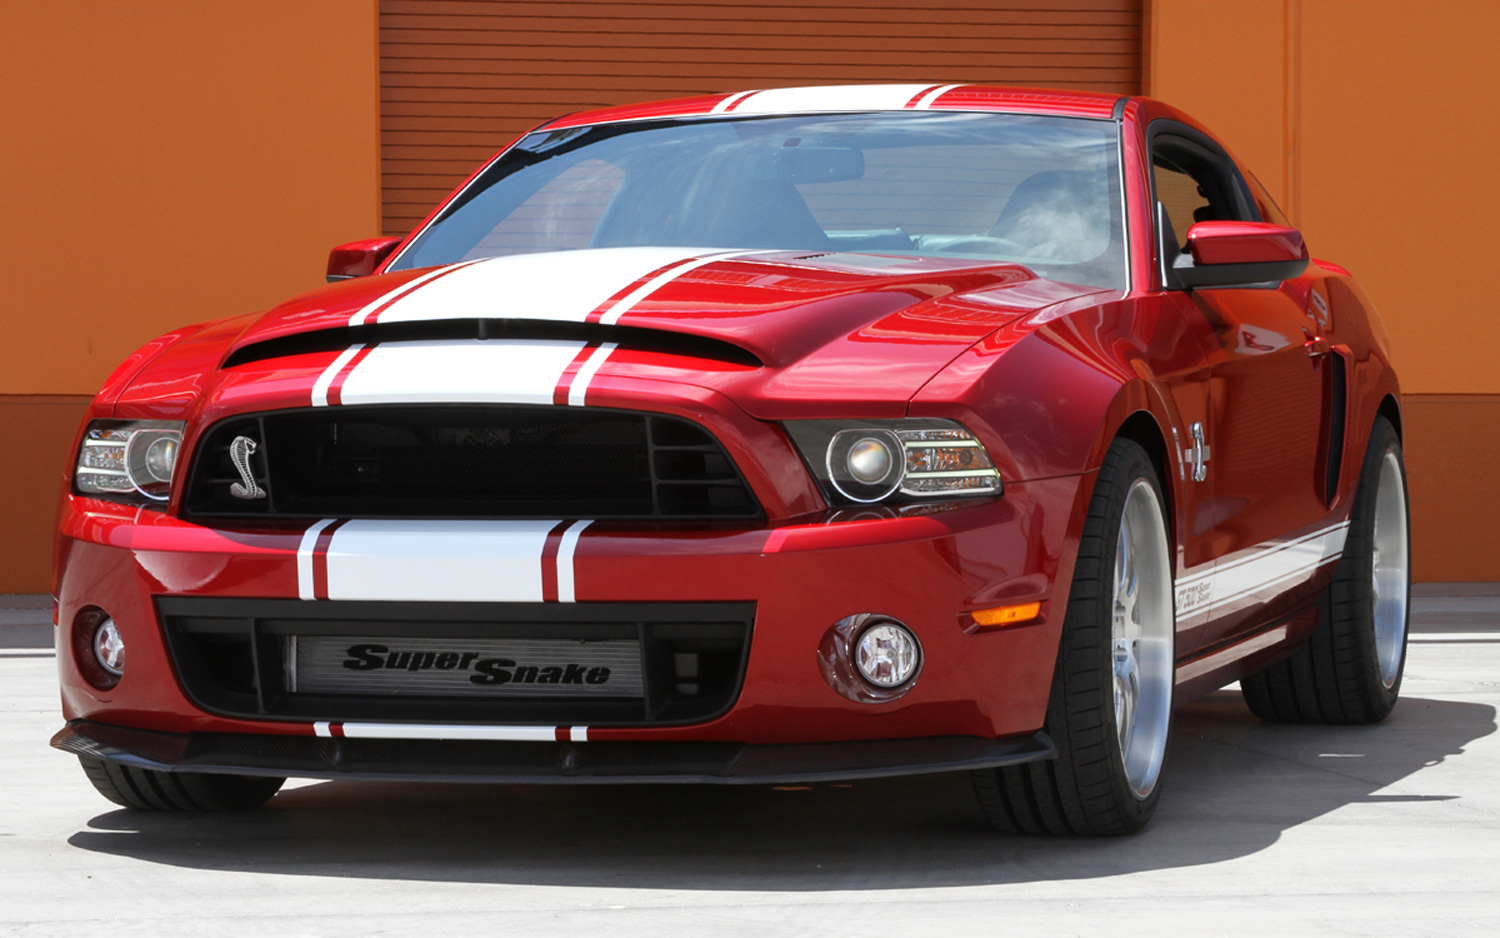 2014 Ford Shelby Gt500 #17